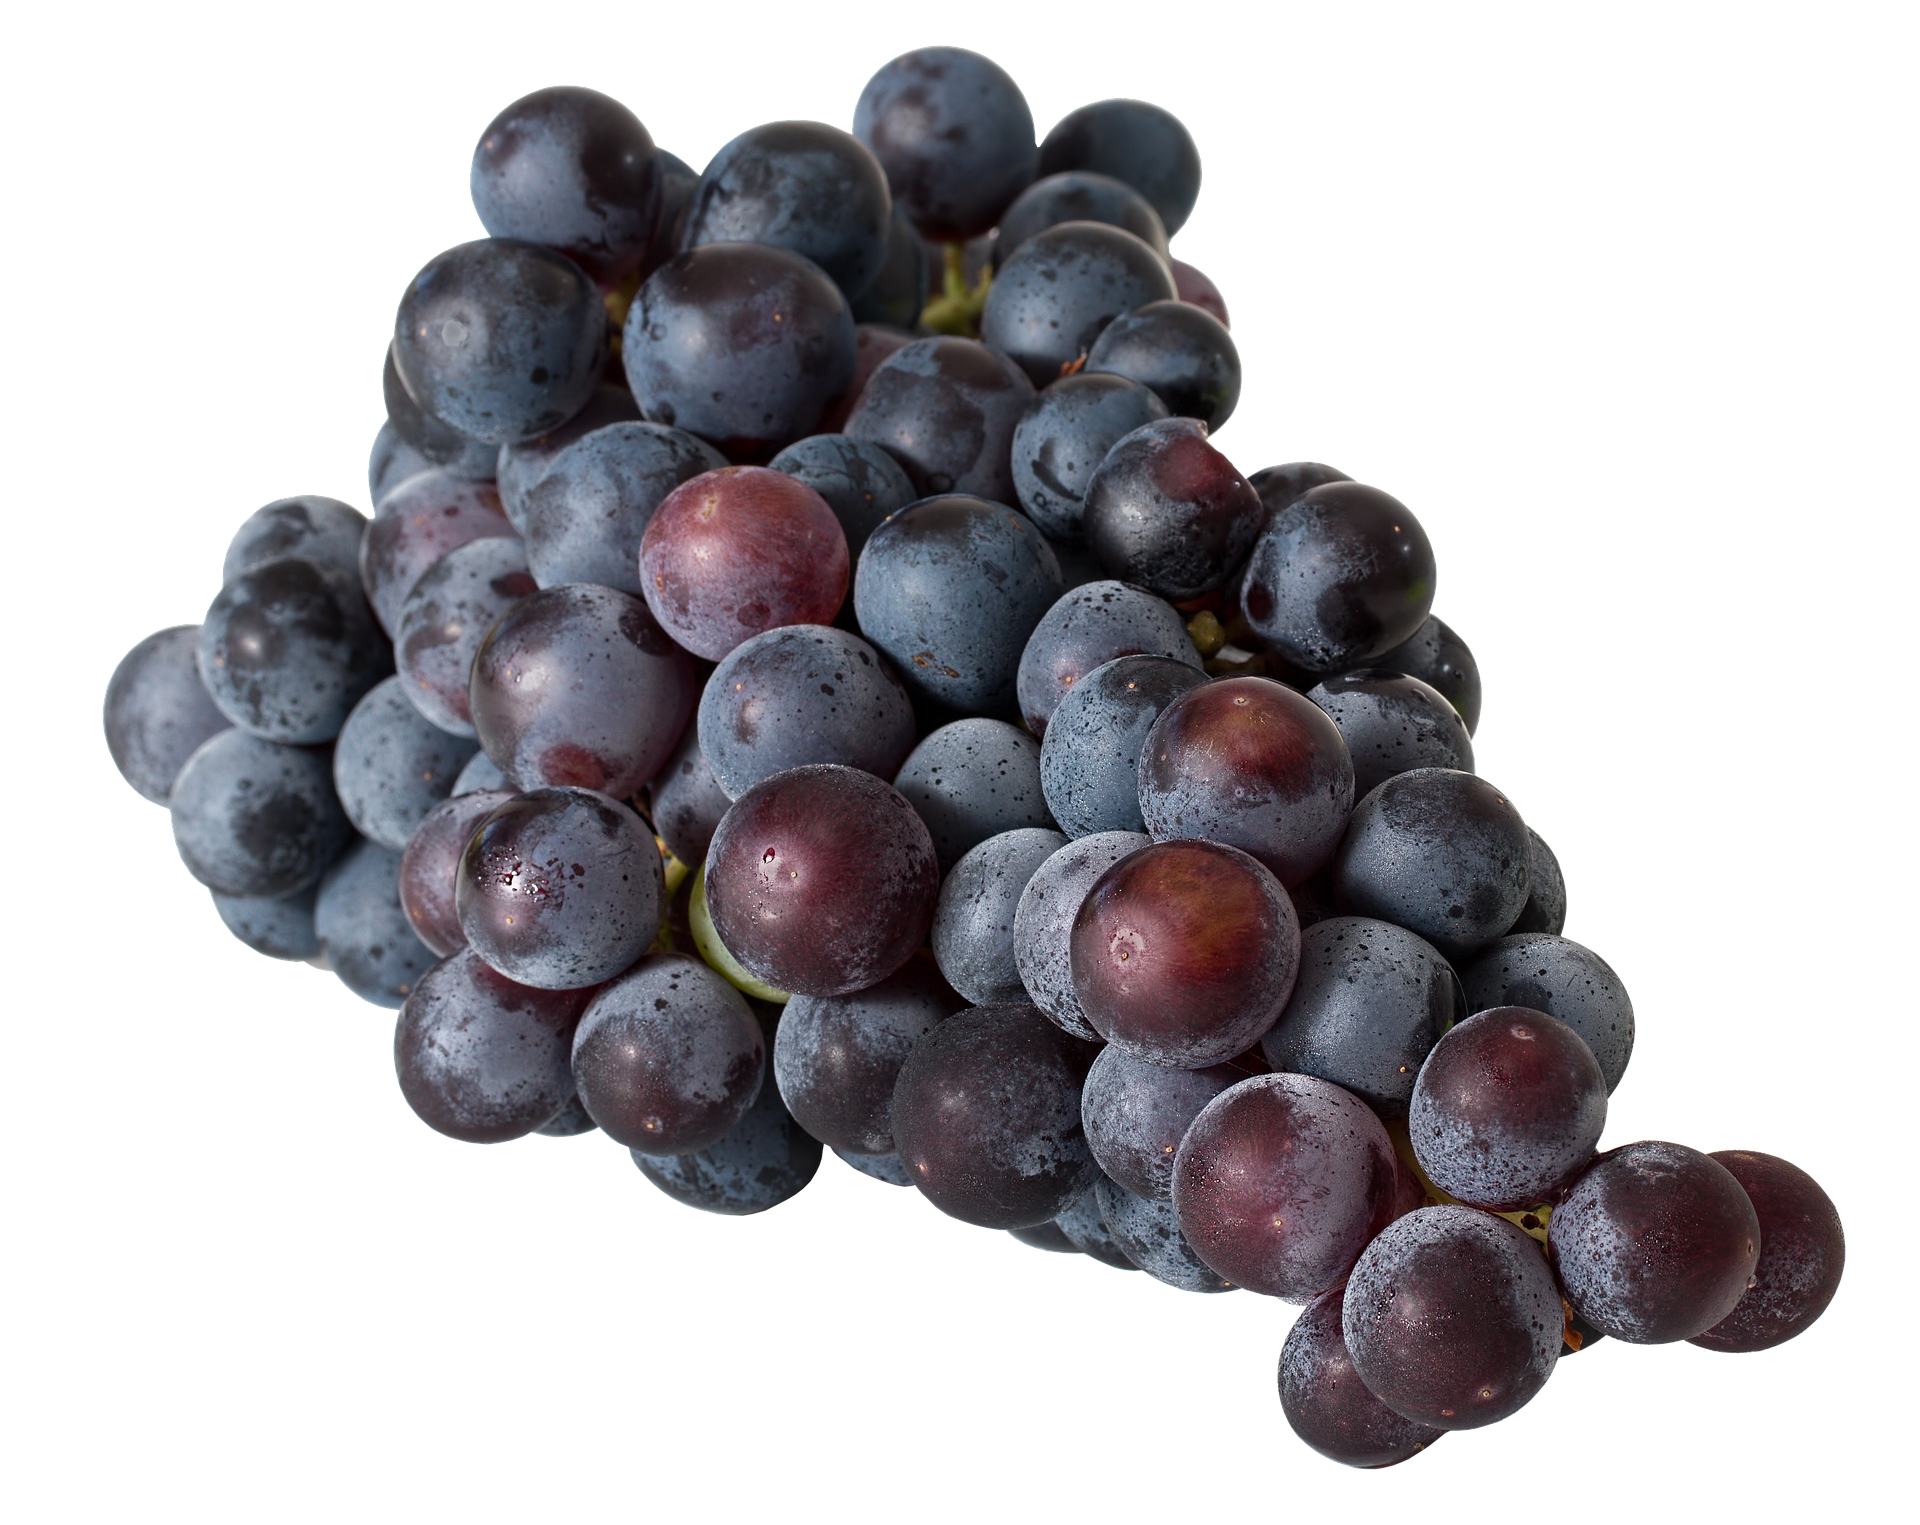 grapes-2520999_1920.png